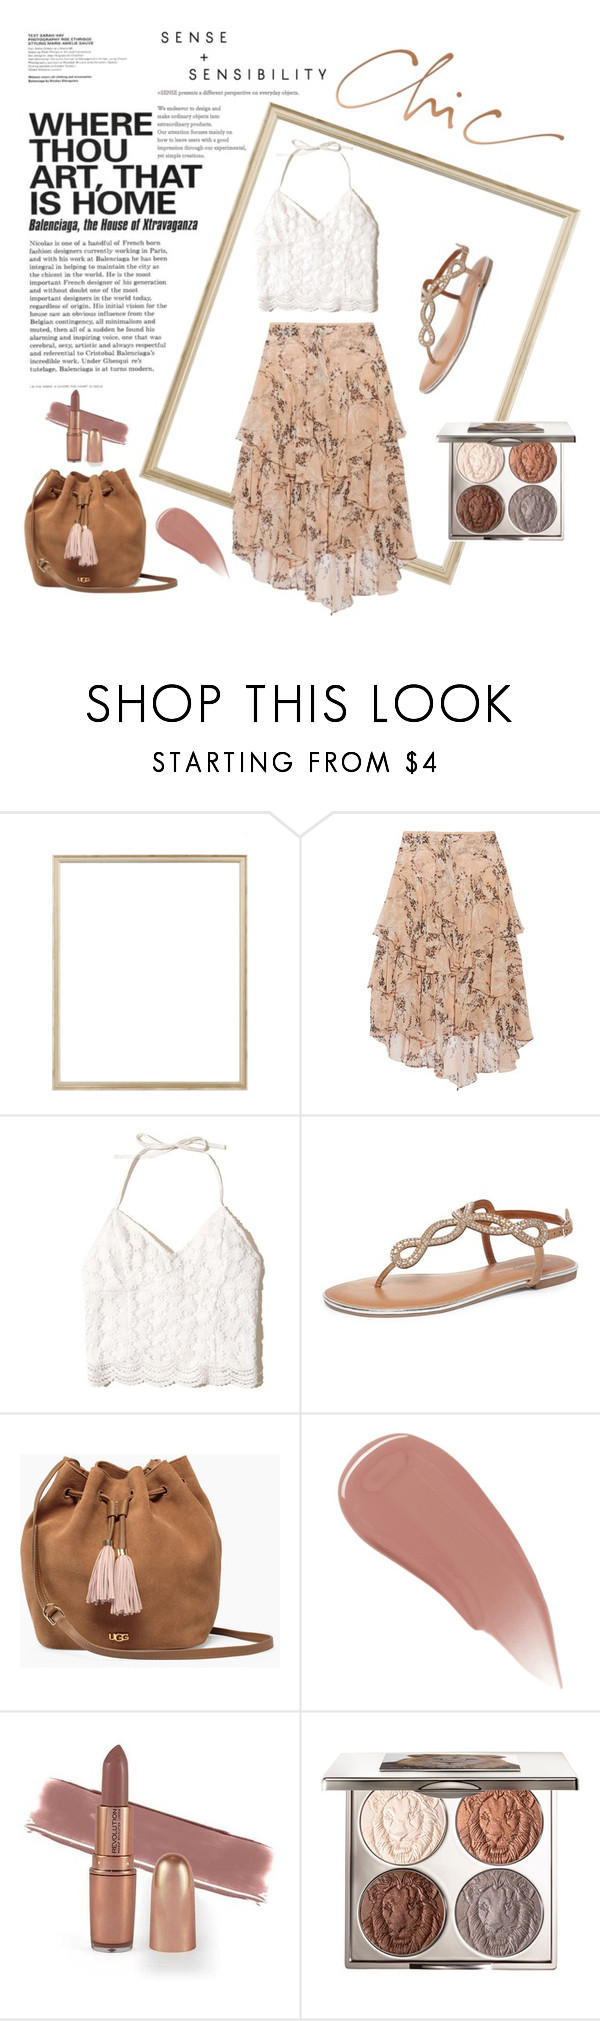 """Floral skirt"" by lilimia ❤ liked on Polyvore featuring Rifle Paper Co, Jason Wu, Hollister Co., Dorothy Perkins, UGG, Burberry and Chantecaille"